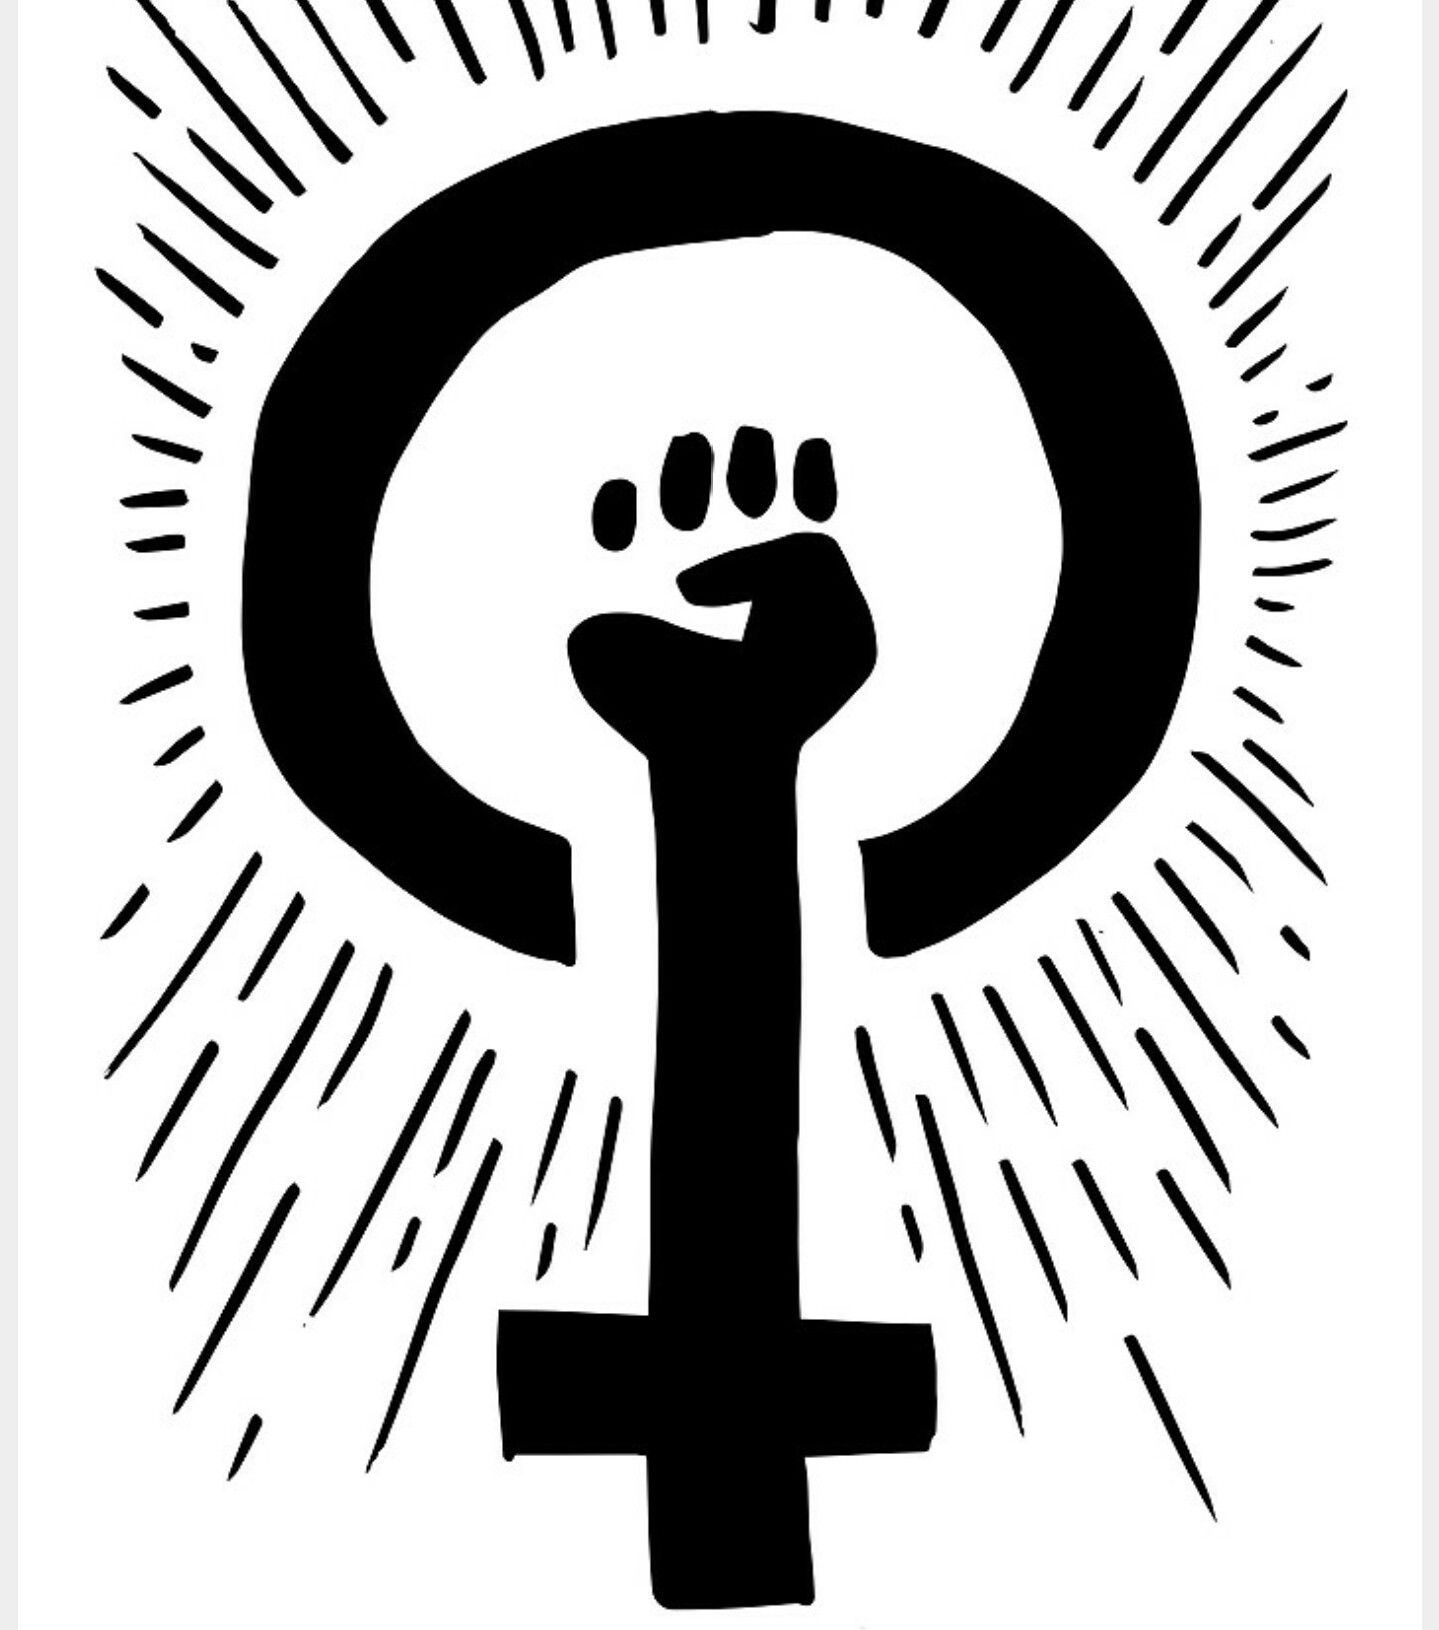 Women s march black and white clipart svg freeuse Women\'s march. Inclusion, equality, strength. | symbols ... svg freeuse